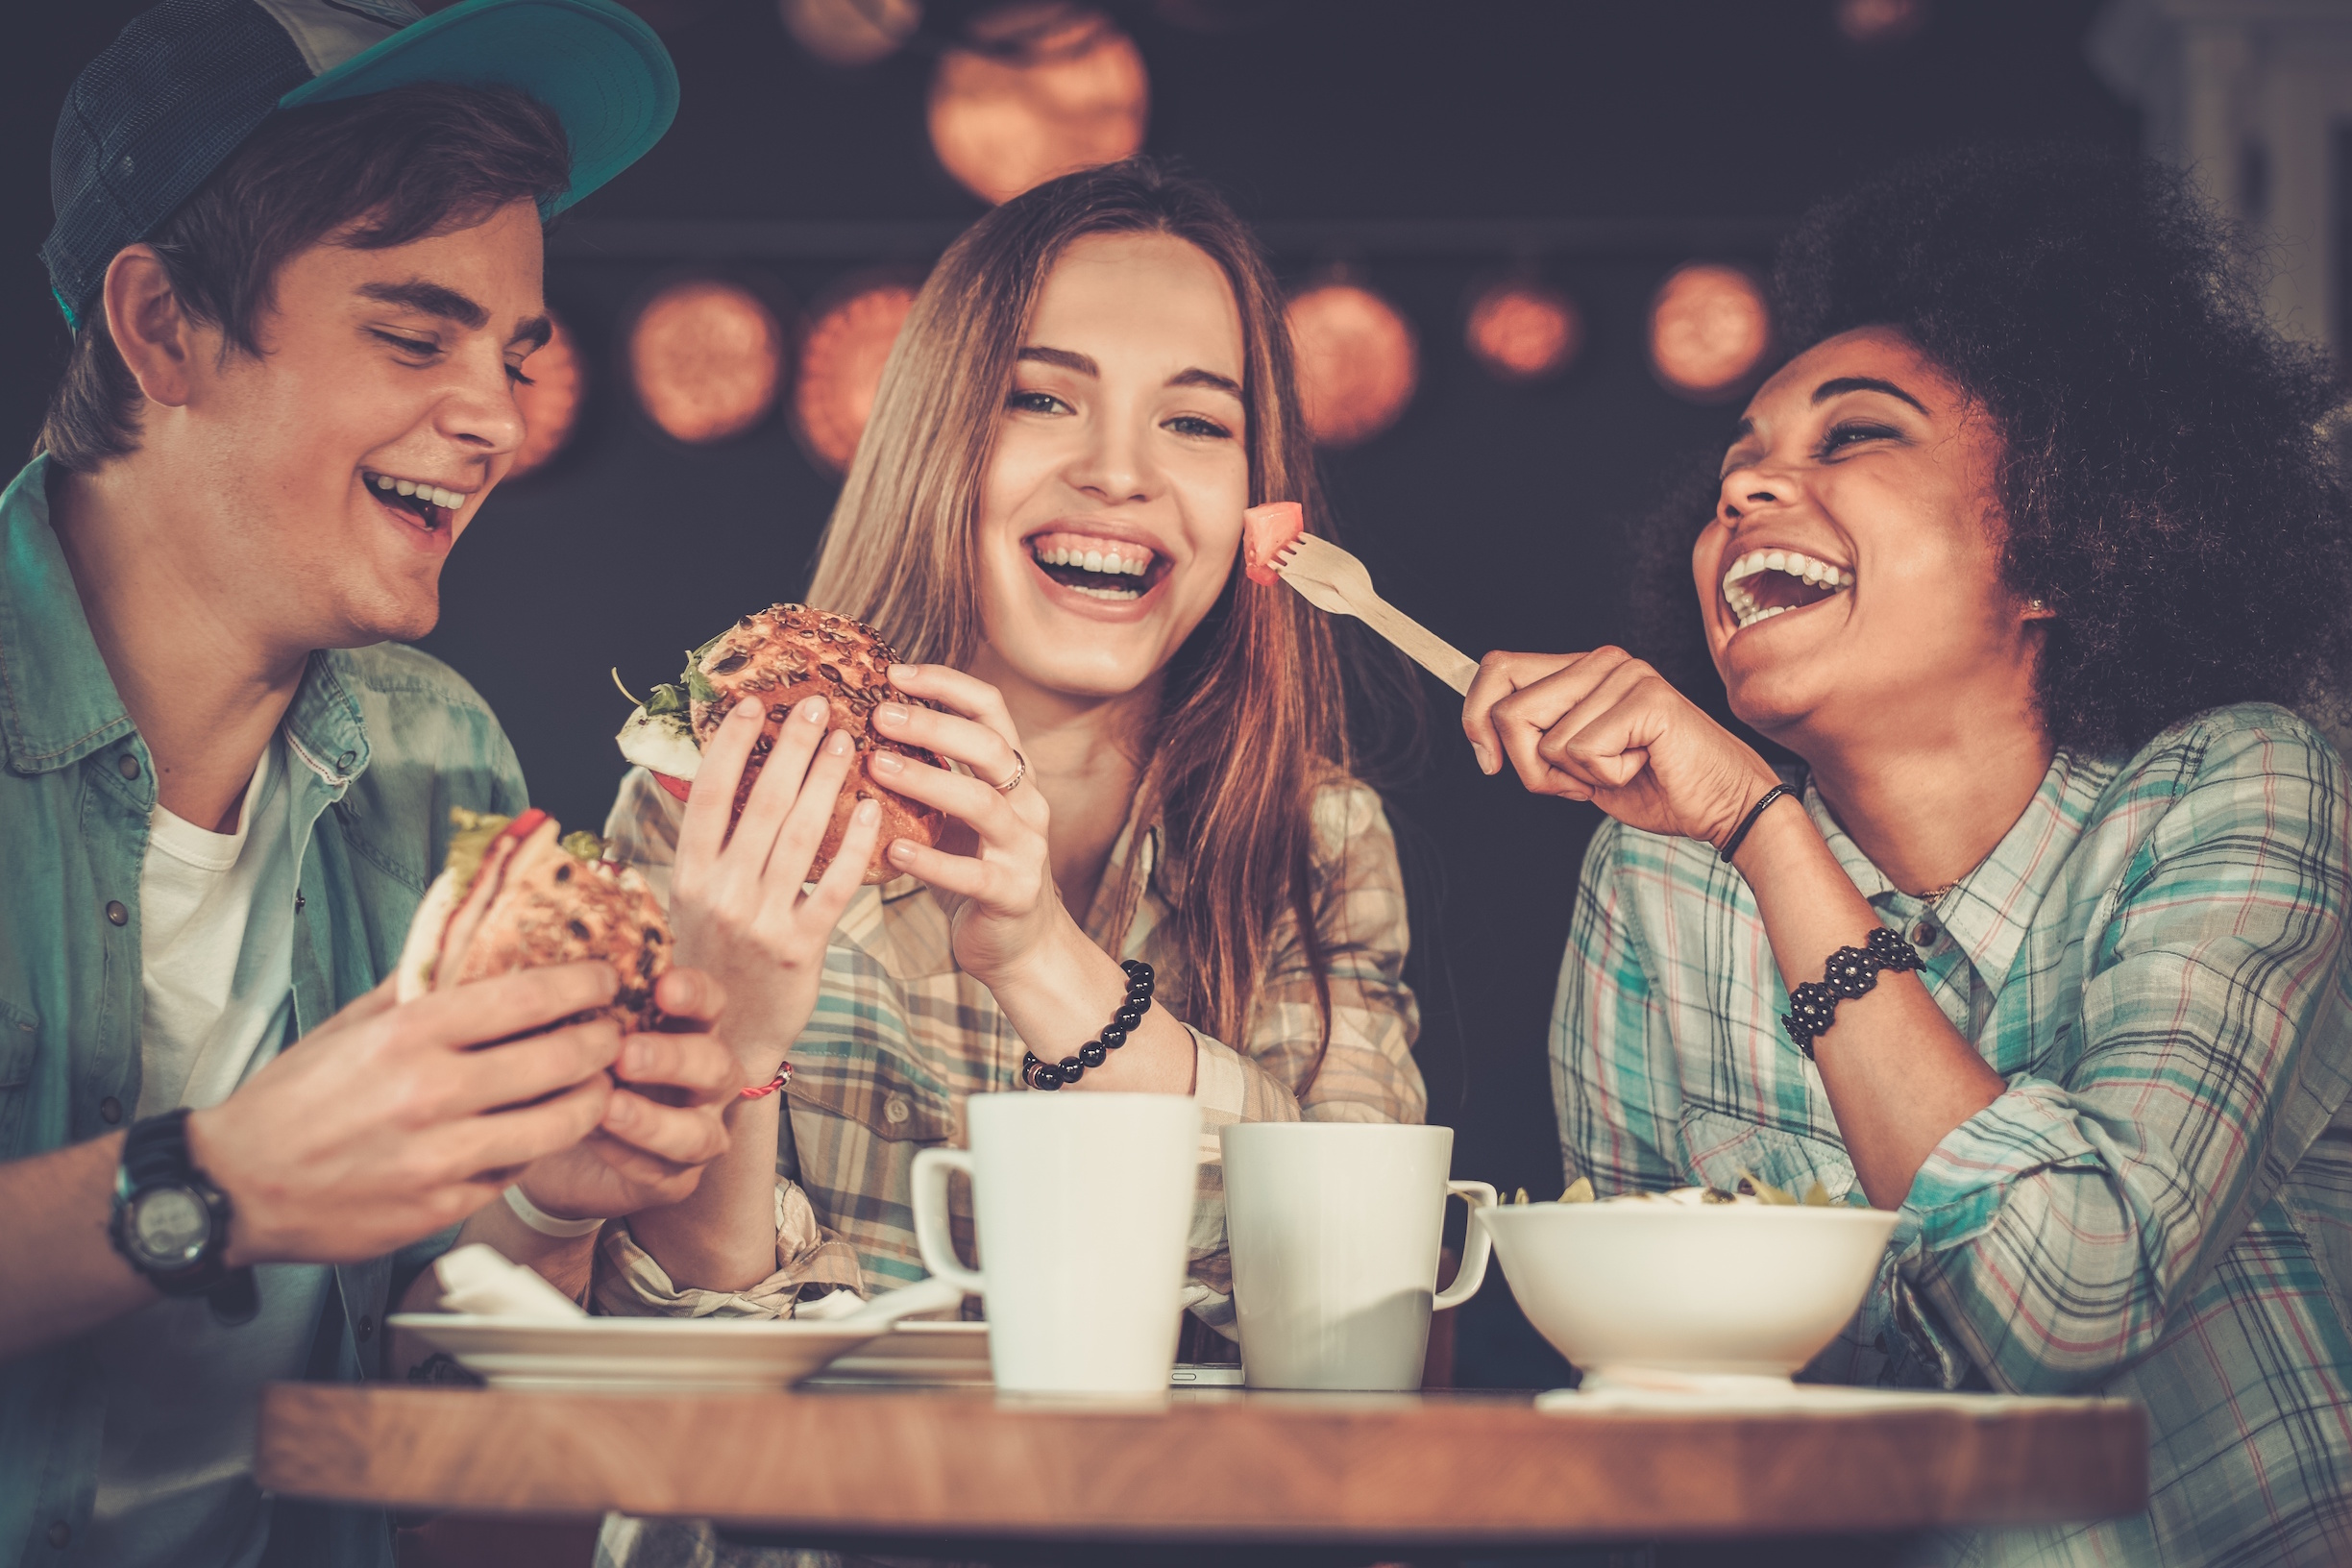 Foods are generally classified as being either sweet, sour, salty, bitter, or spicy. According to one expert, the types of food that we desire the most say a lot about our personalities.